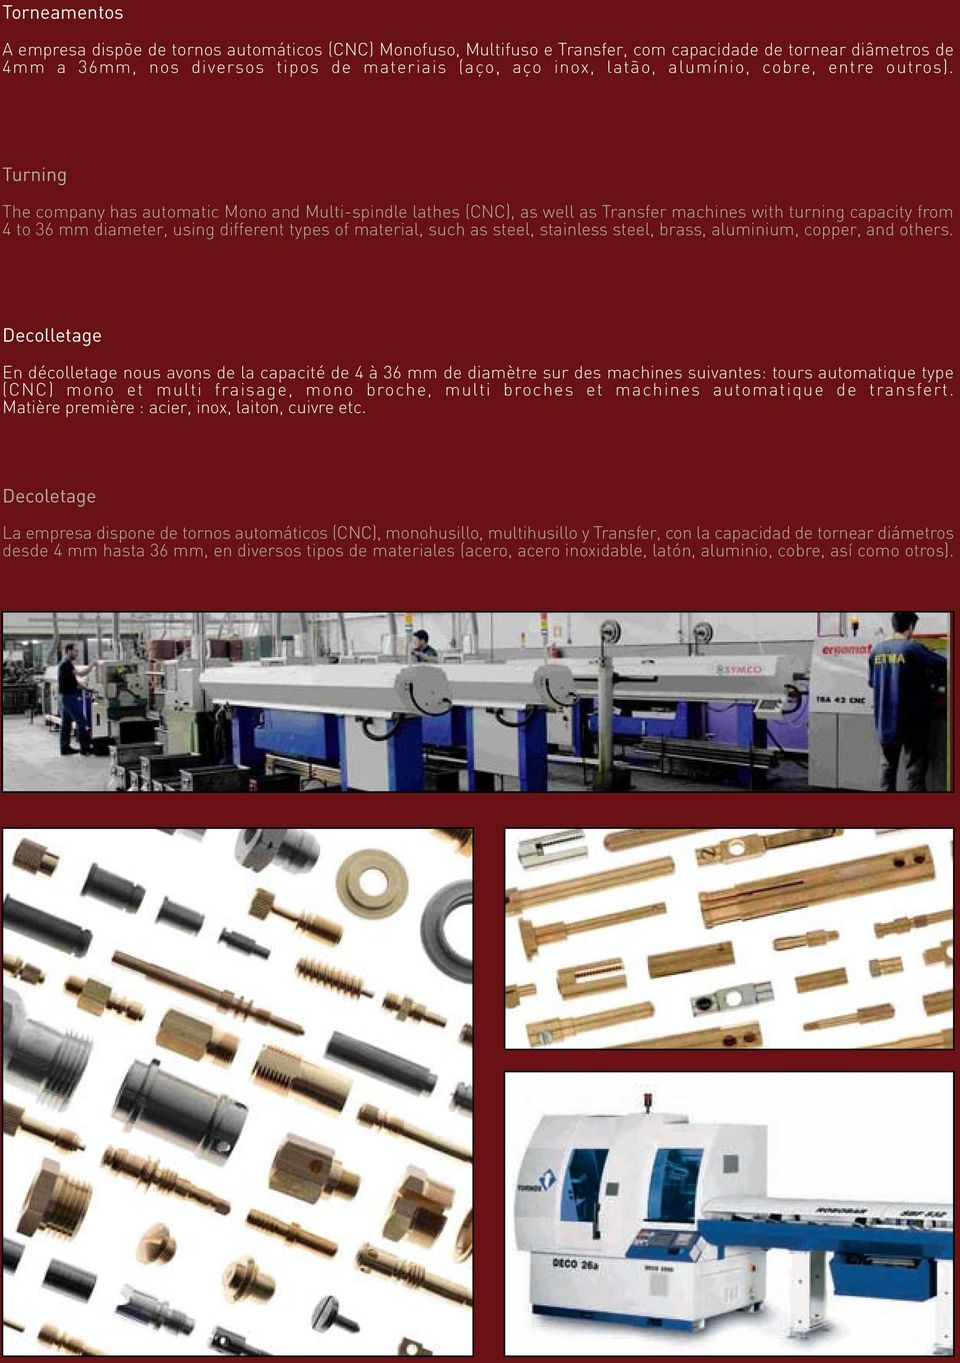 Turning The company has automatic Mono and Multi-spindle lathes (CNC), as well as Transfer machines with turning capacity from 4 to 36 mm diameter, using different types of material, such as steel,